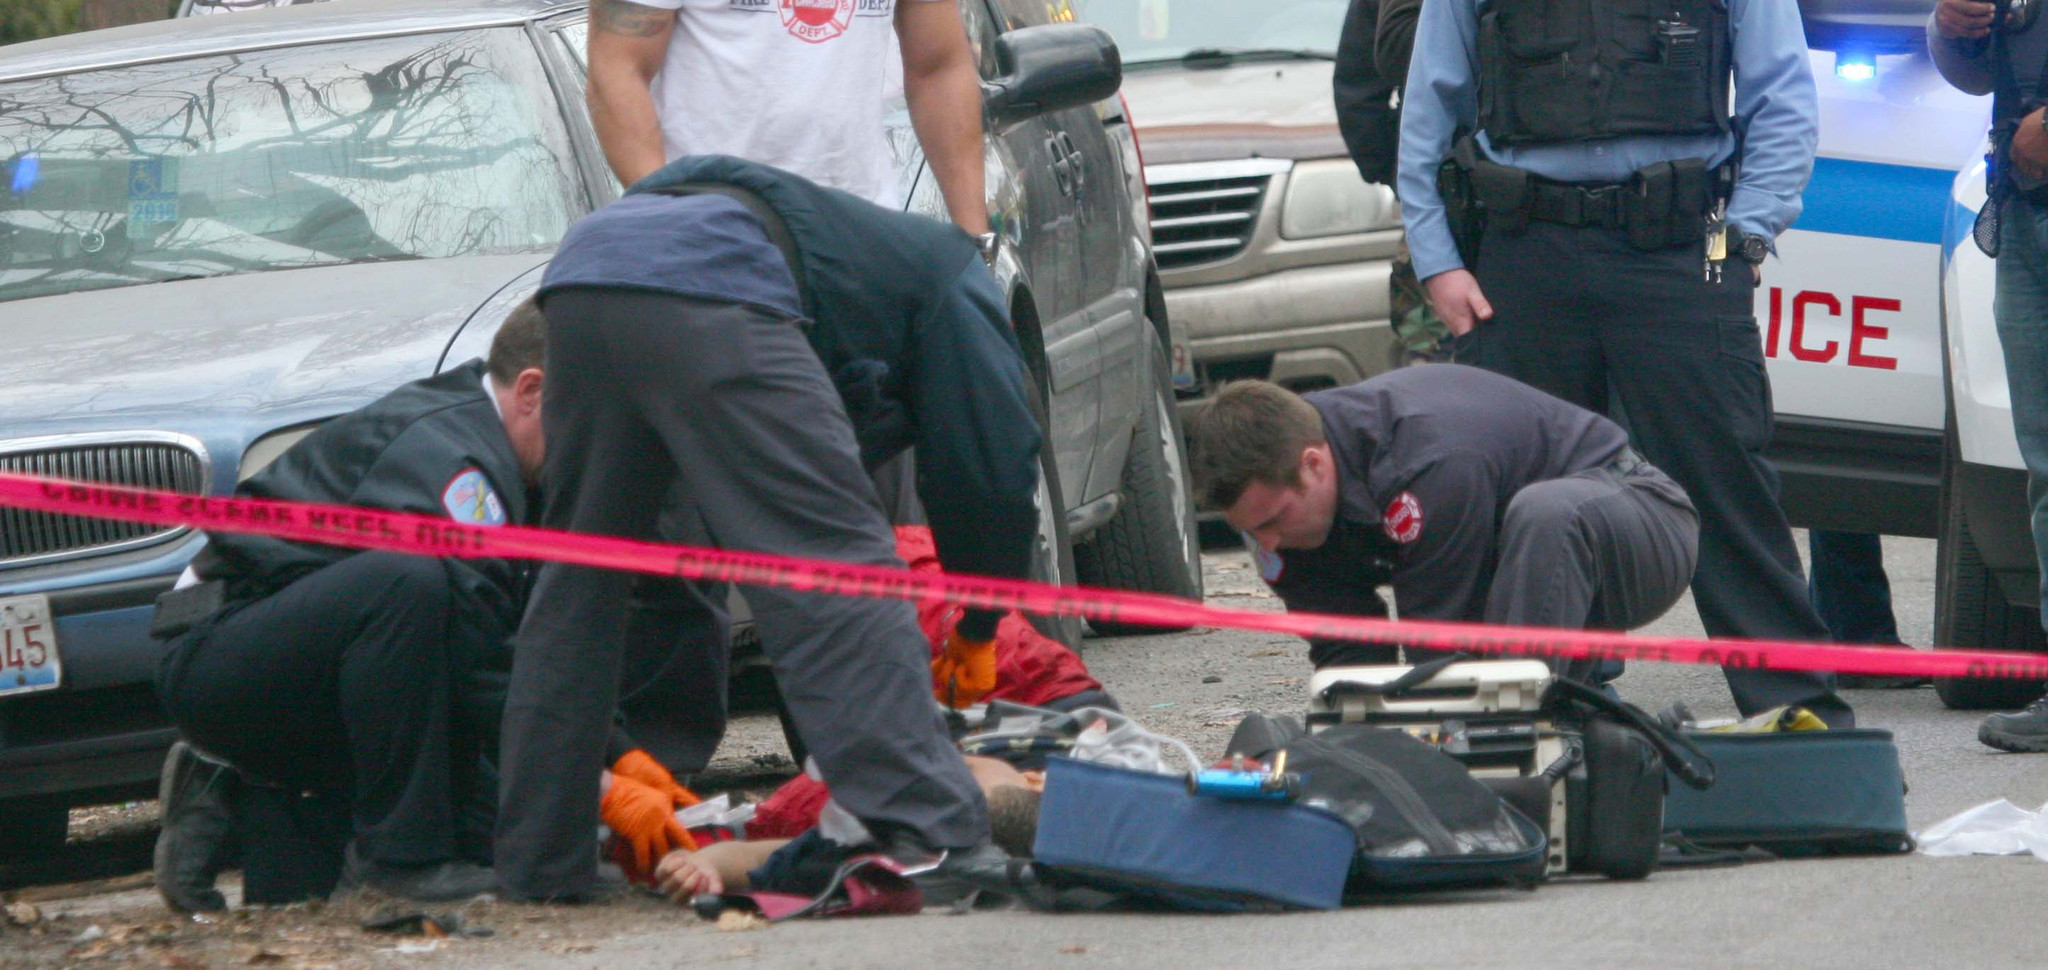 east chatham men One man was killed and another wounded when a gunman opened fire on a car in the east chatham neighborhood on the south side this morning, police said.